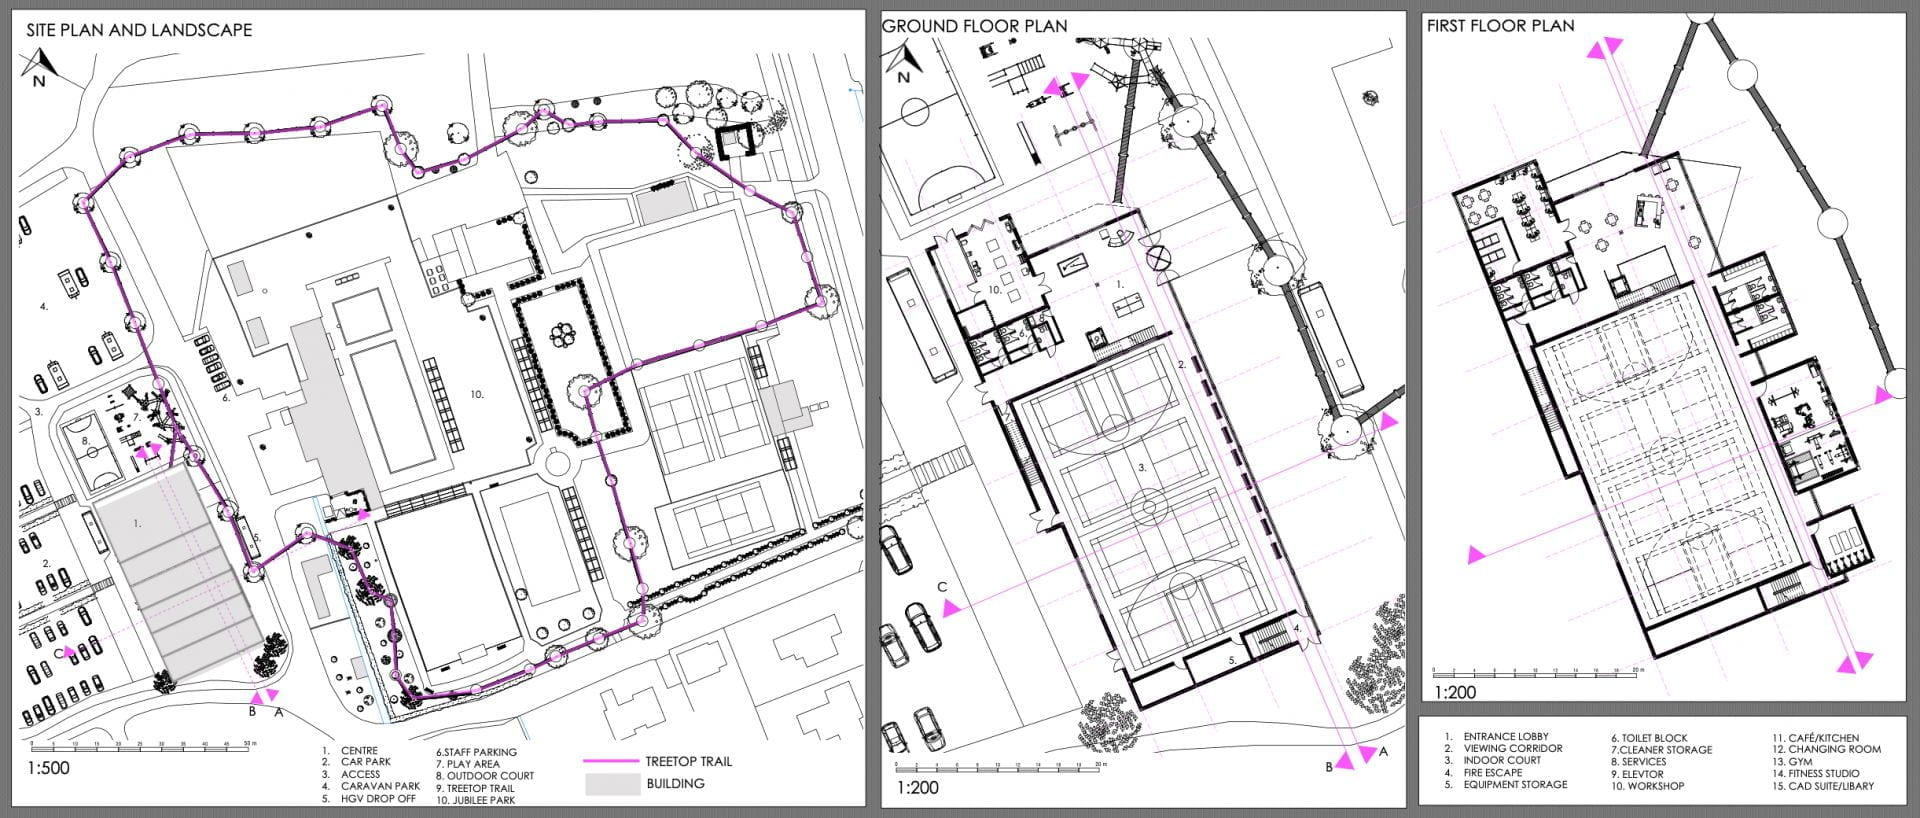 Site plan showing where the building will sit within its context